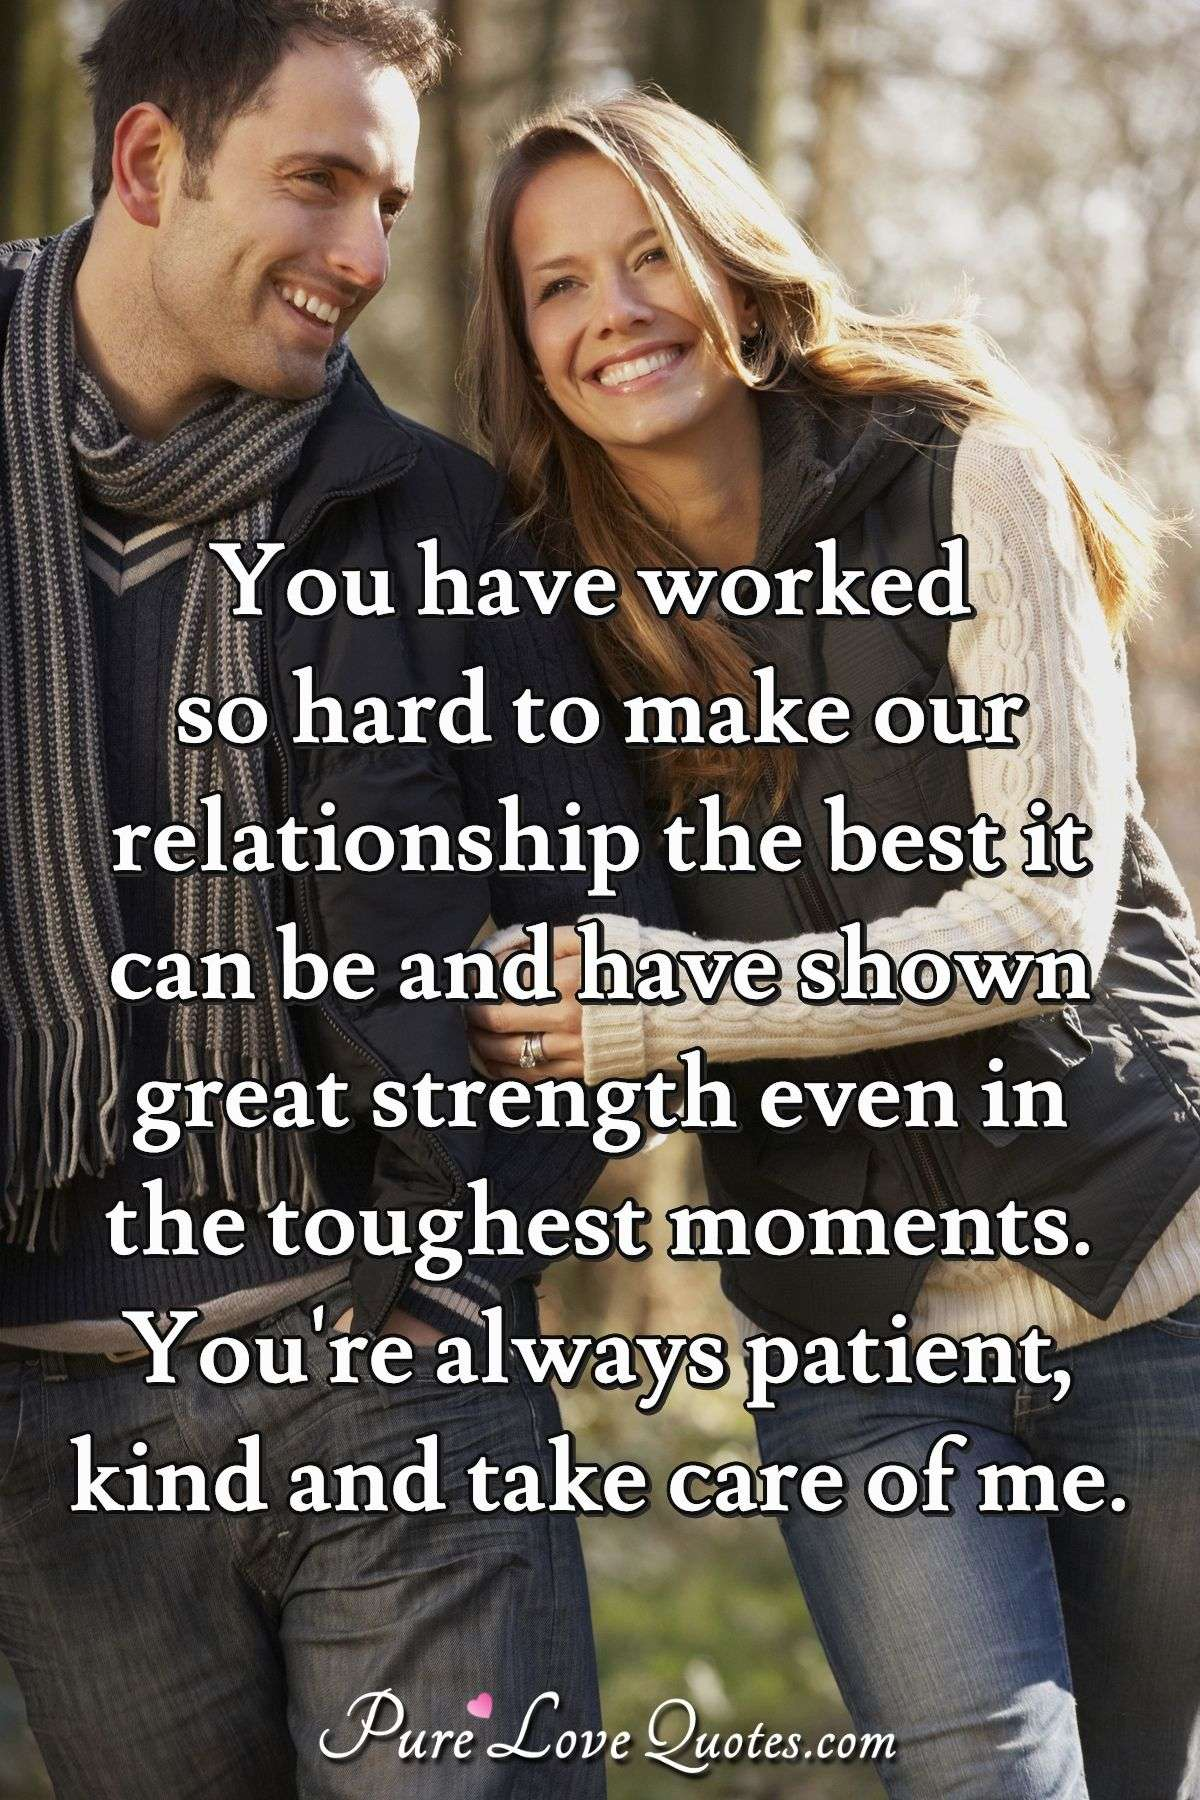 You have worked so hard to make our relationship the best it can be and have shown great strength even in the toughest moments. You're always patient, kind and take care of me. - Anonymous